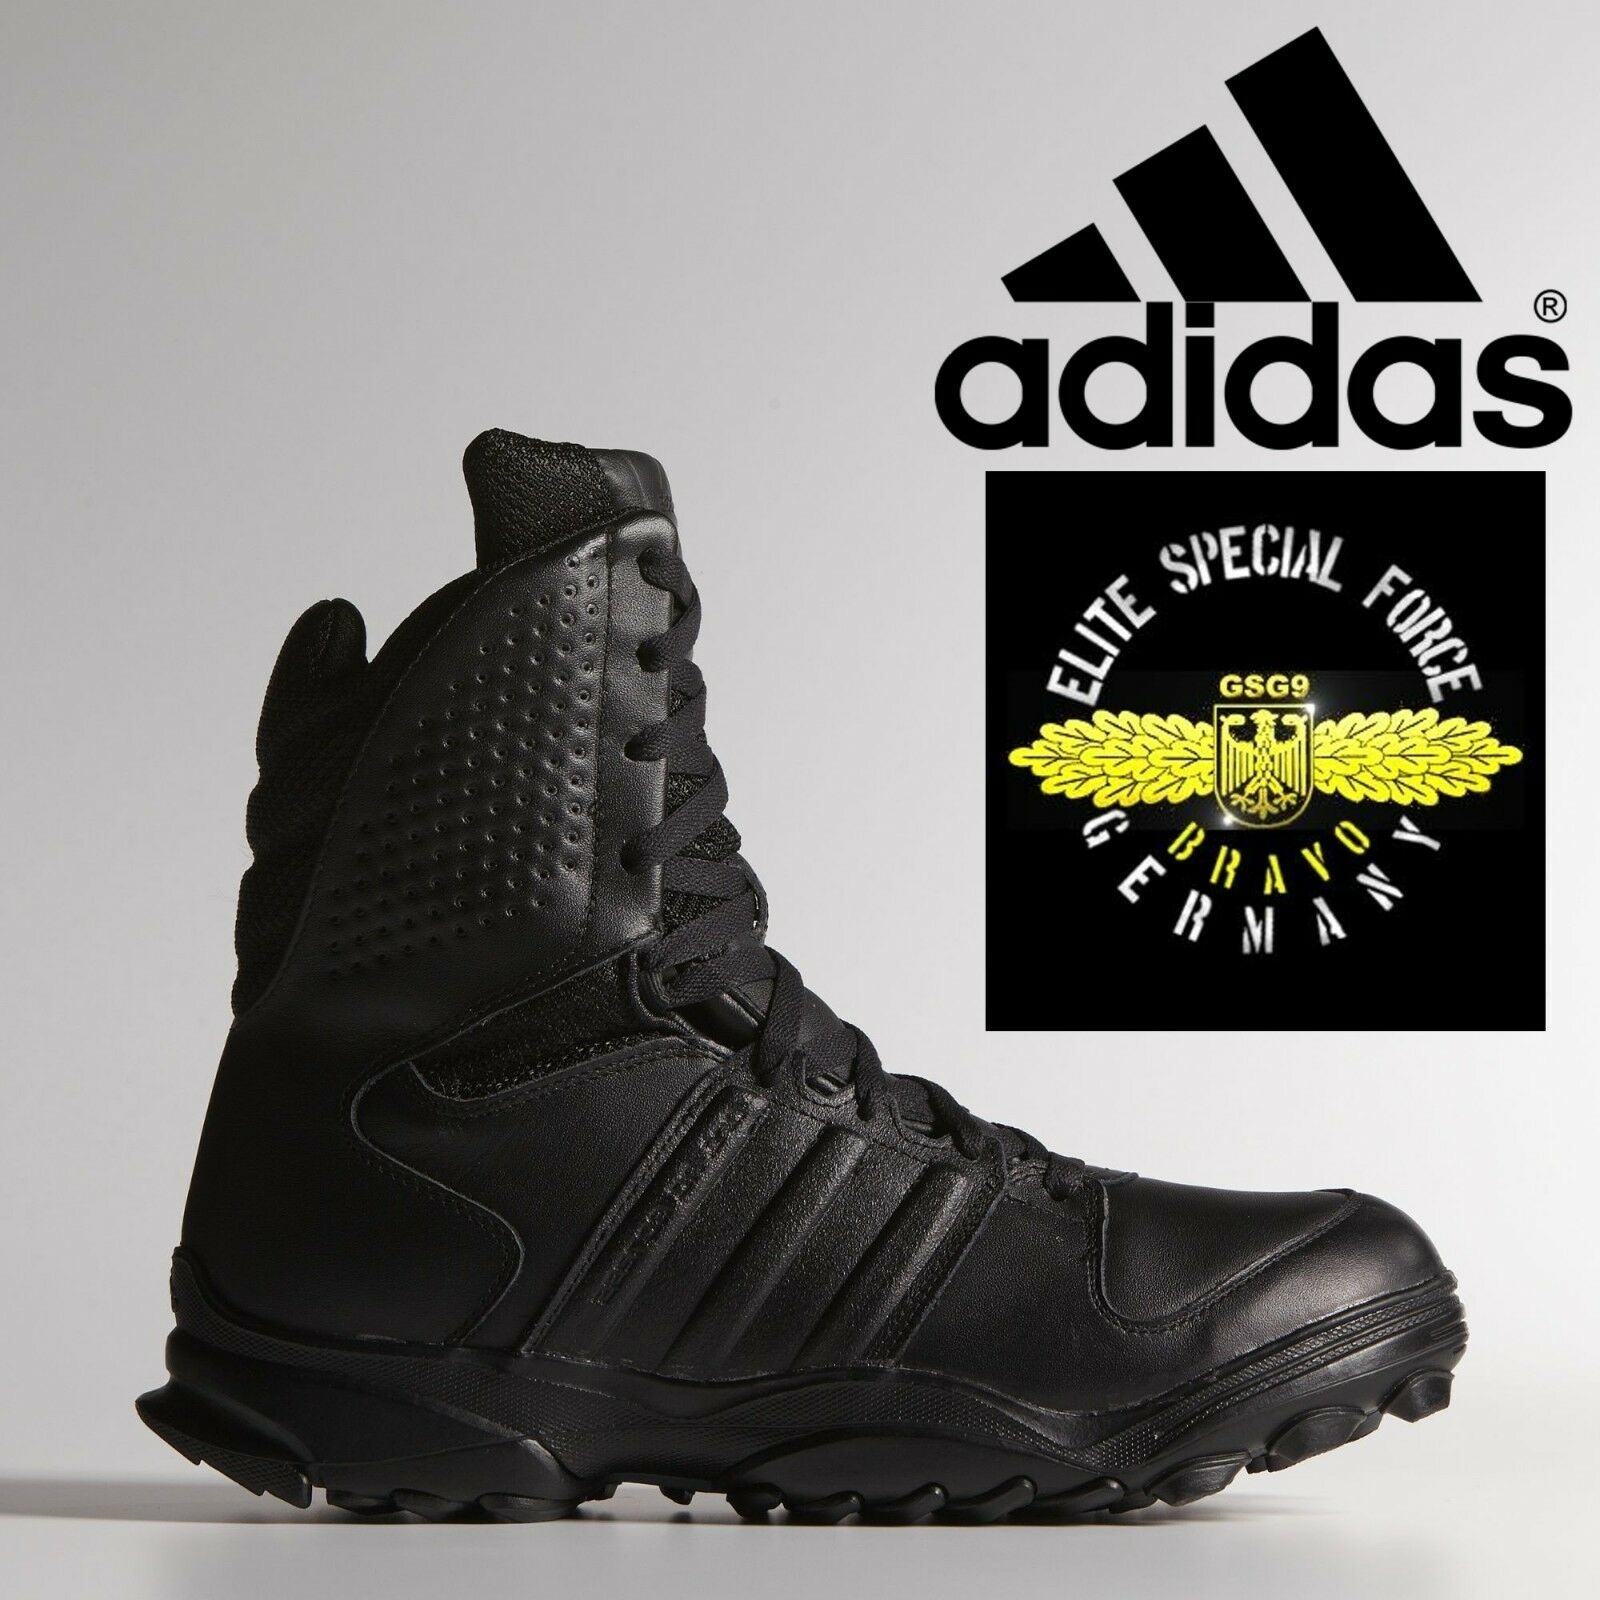 38474fc2ff7 Details about adidas GSG 9.2 Combat Boots Military SWAT German Police Shoes  Black Leather